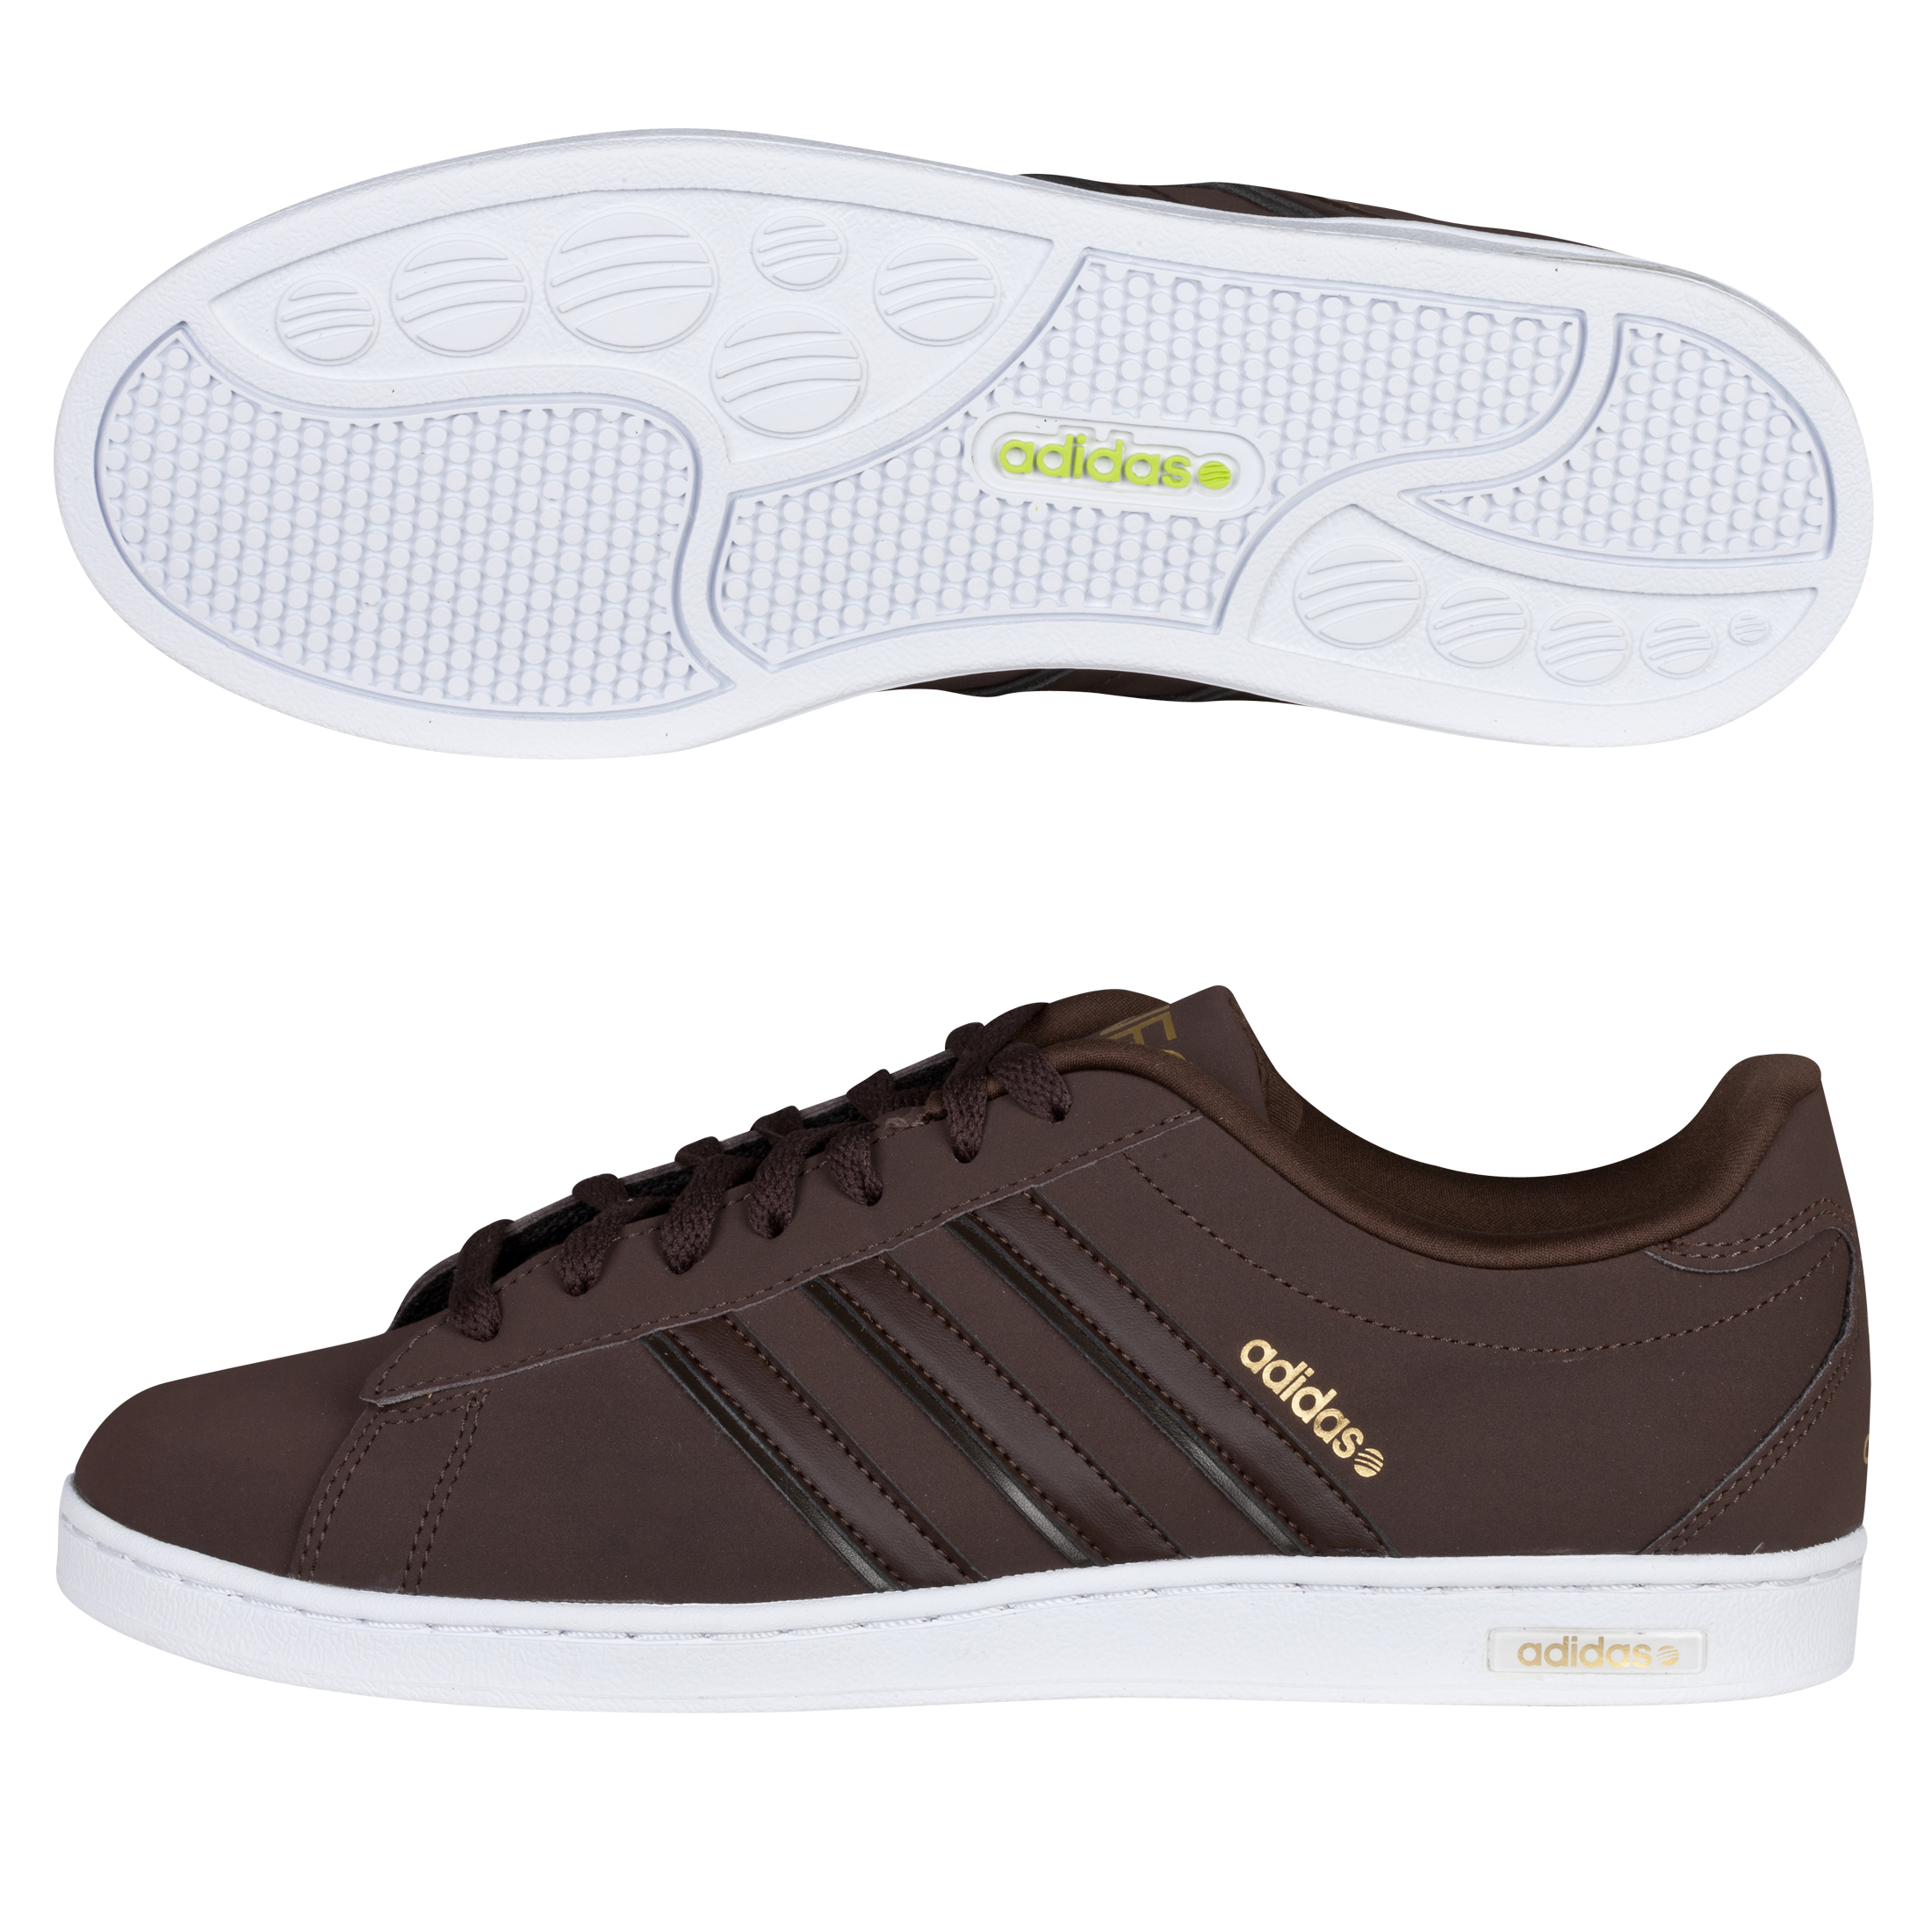 adidas Derby Trainers - Espresso / Espresso / Metallic Gold